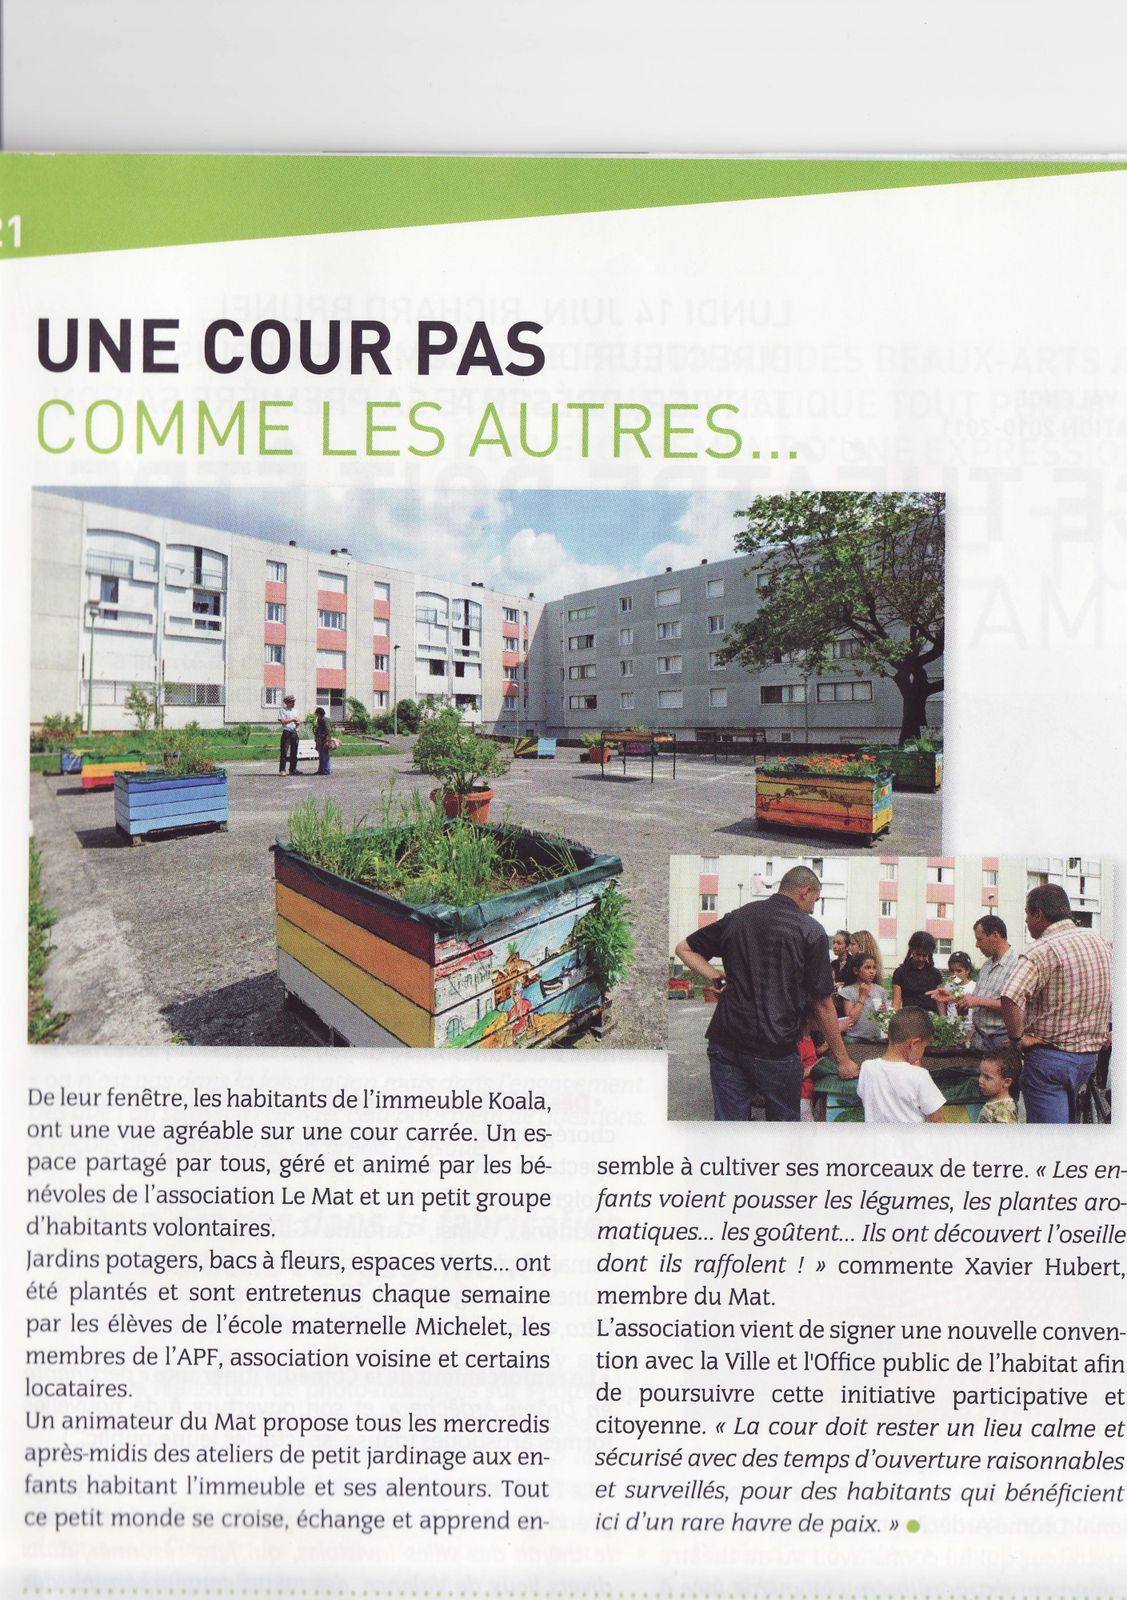 Article-Vu-du-Kiosque-Valence-ete2010.JPG